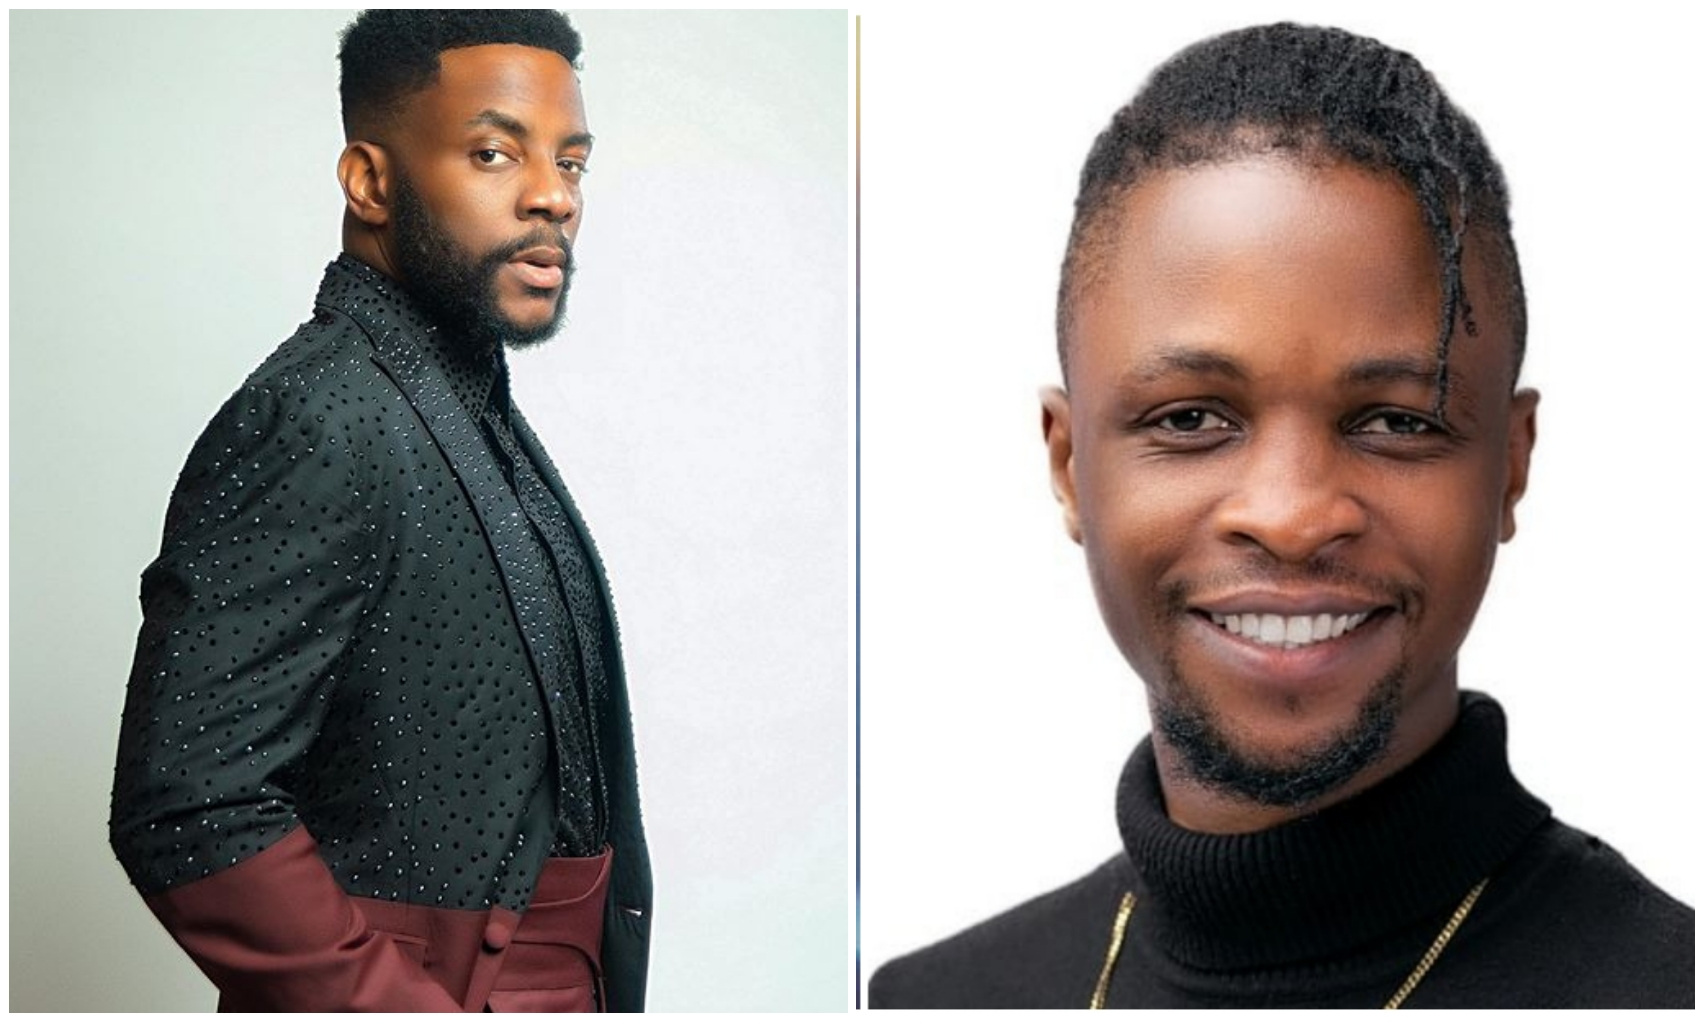 #BBNaija: Ebuka heaps praise on Laycon after he showcased his rap skills